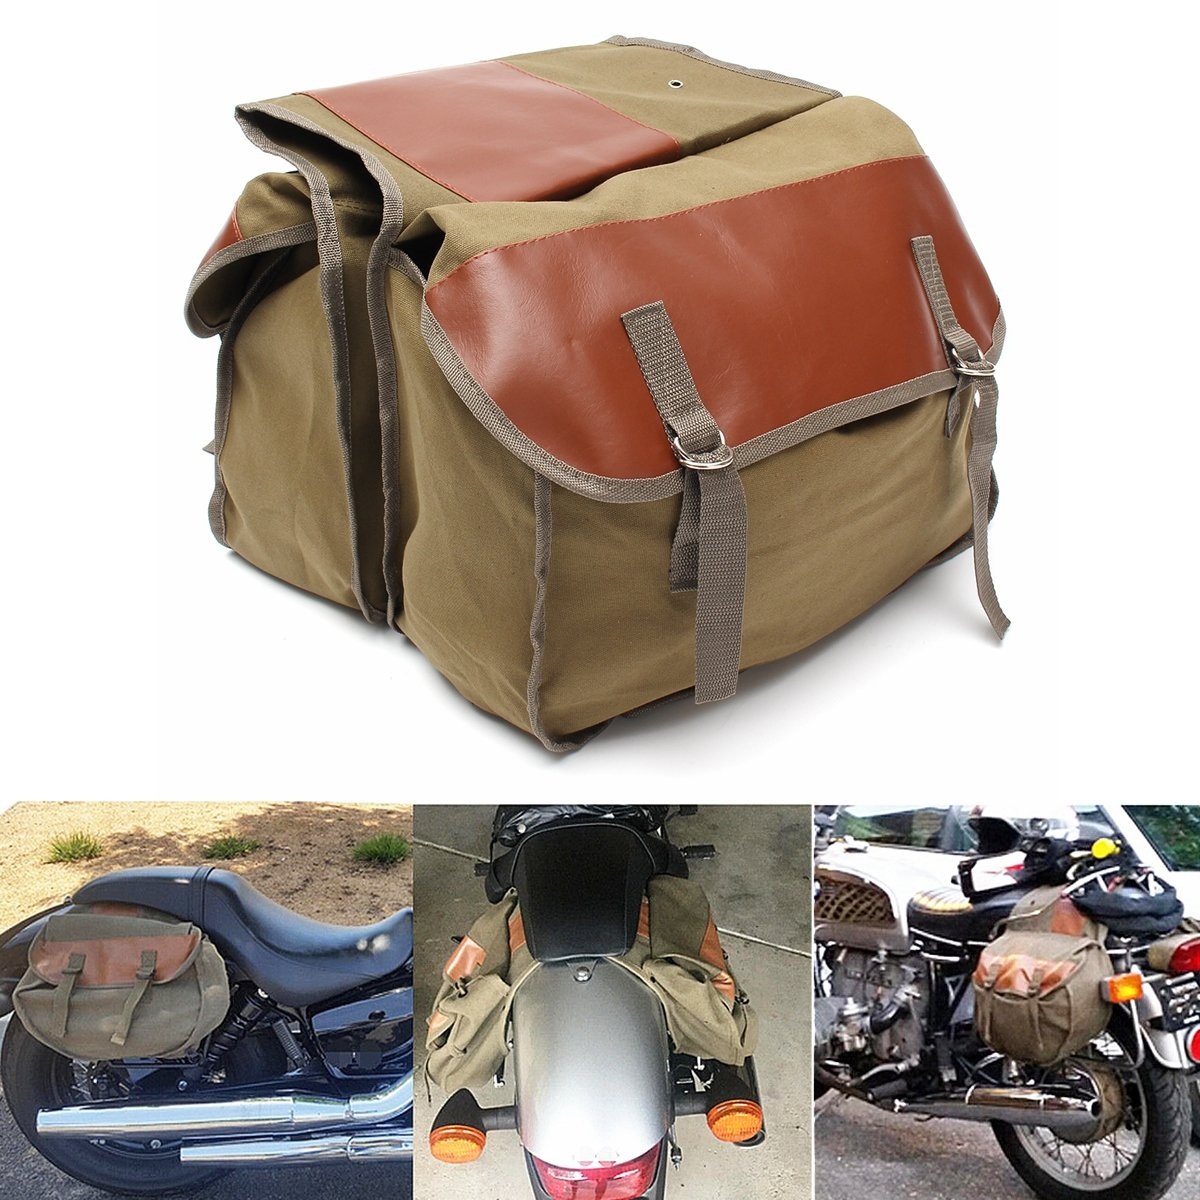 GEMITTO Motorcycle Saddle Bag Heavy-Duty Travel Panniers 2 Strap Motorbike Bicycle Bag for Travel Army Green by GEMITTO